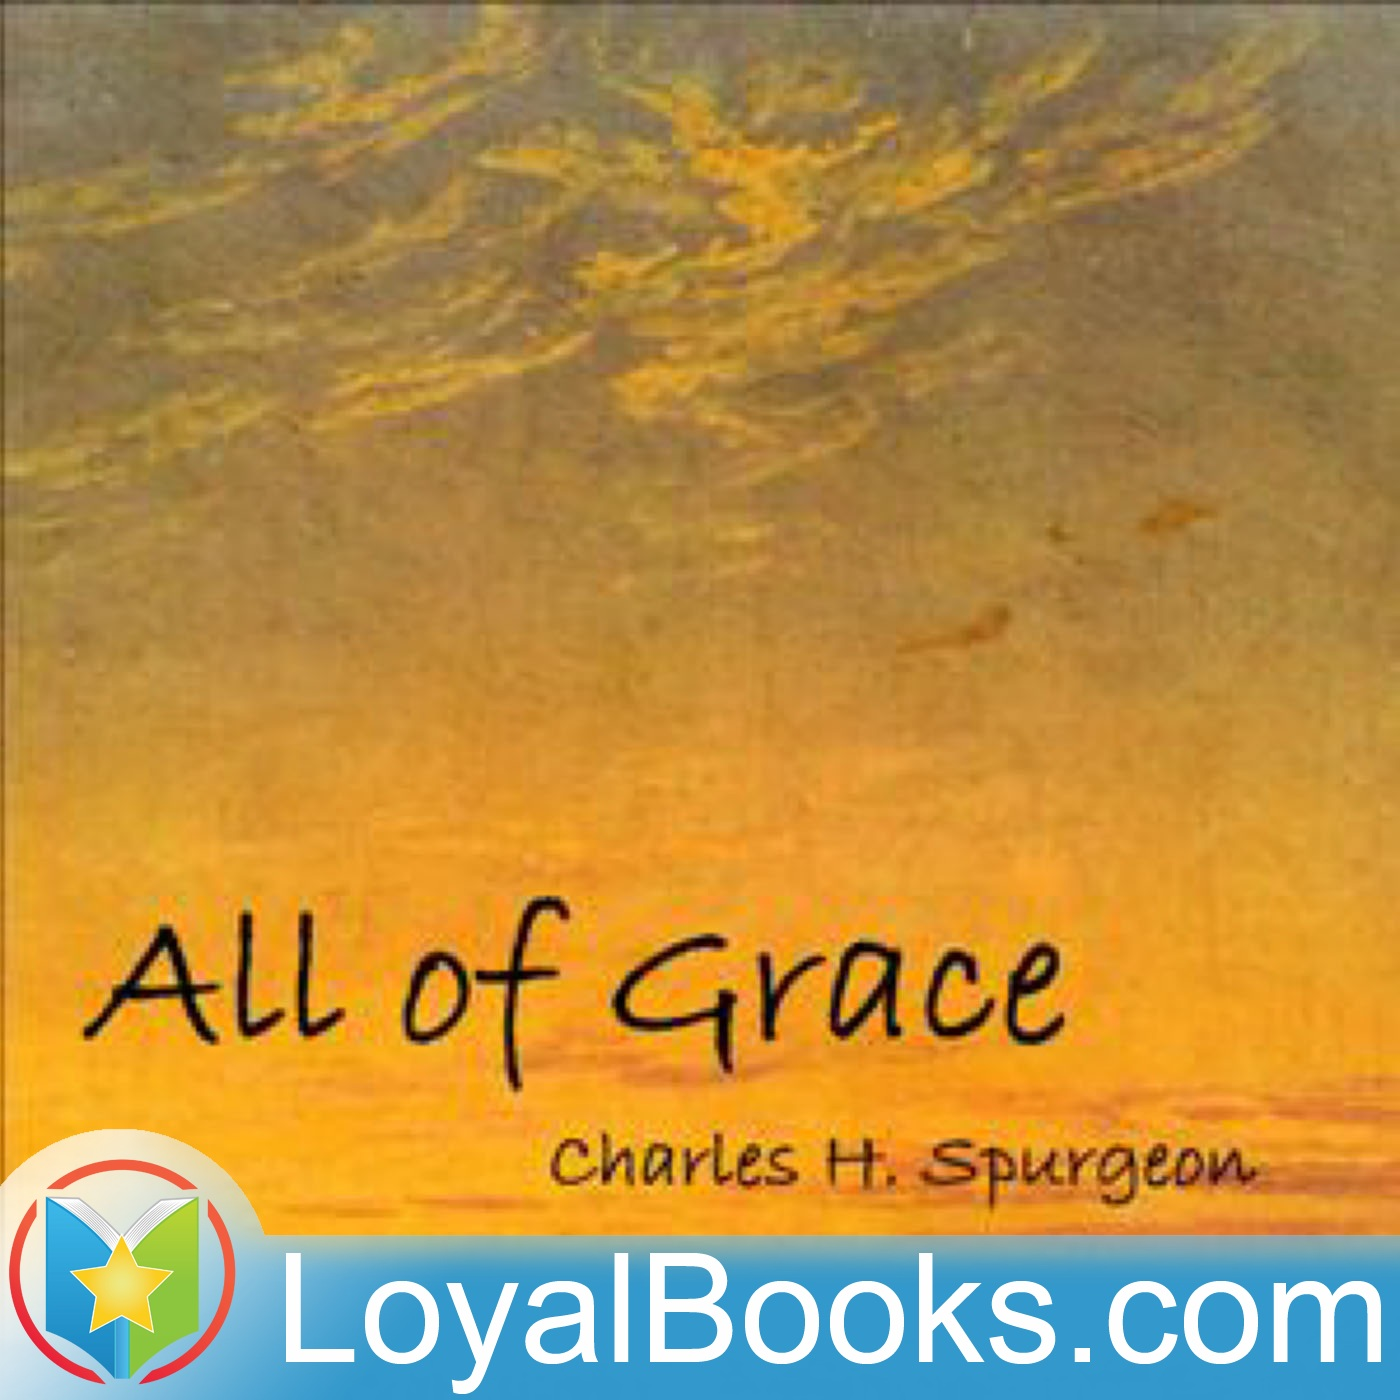 <![CDATA[All of Grace by Charles H. Spurgeon]]>